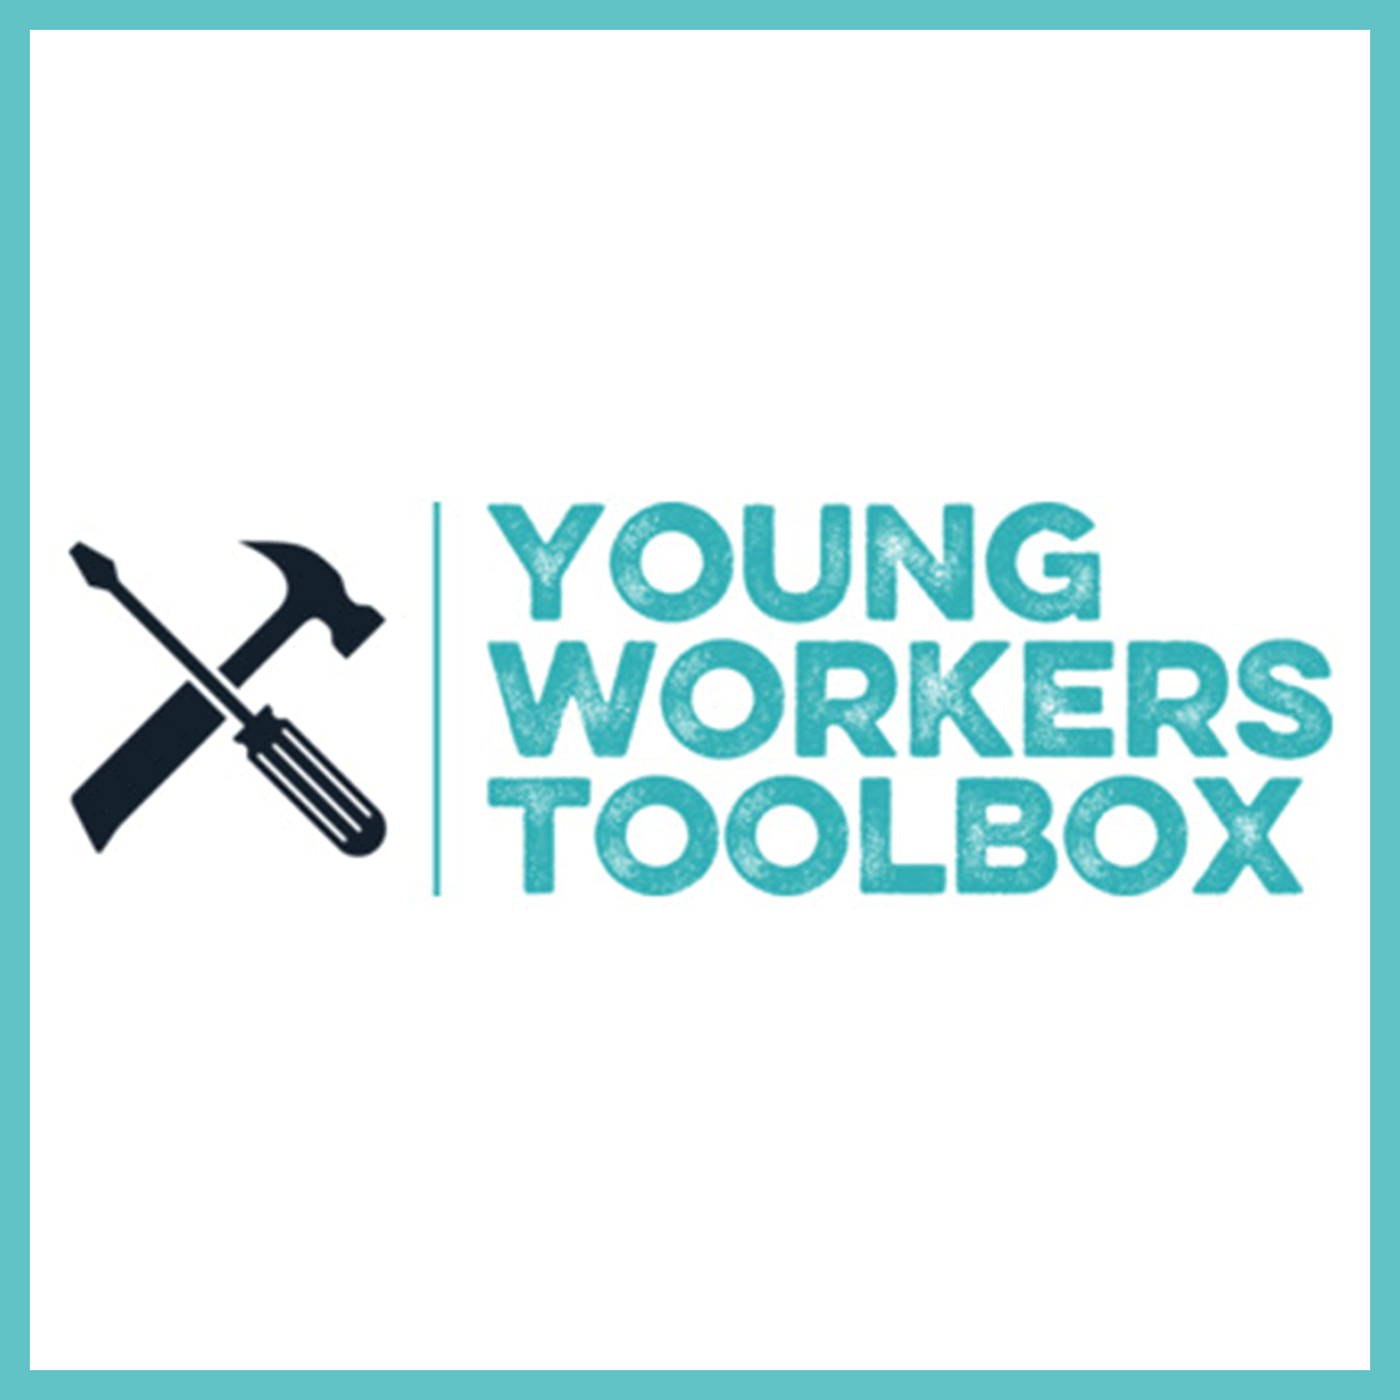 The Young Workers Toolbox - 20-11-2019